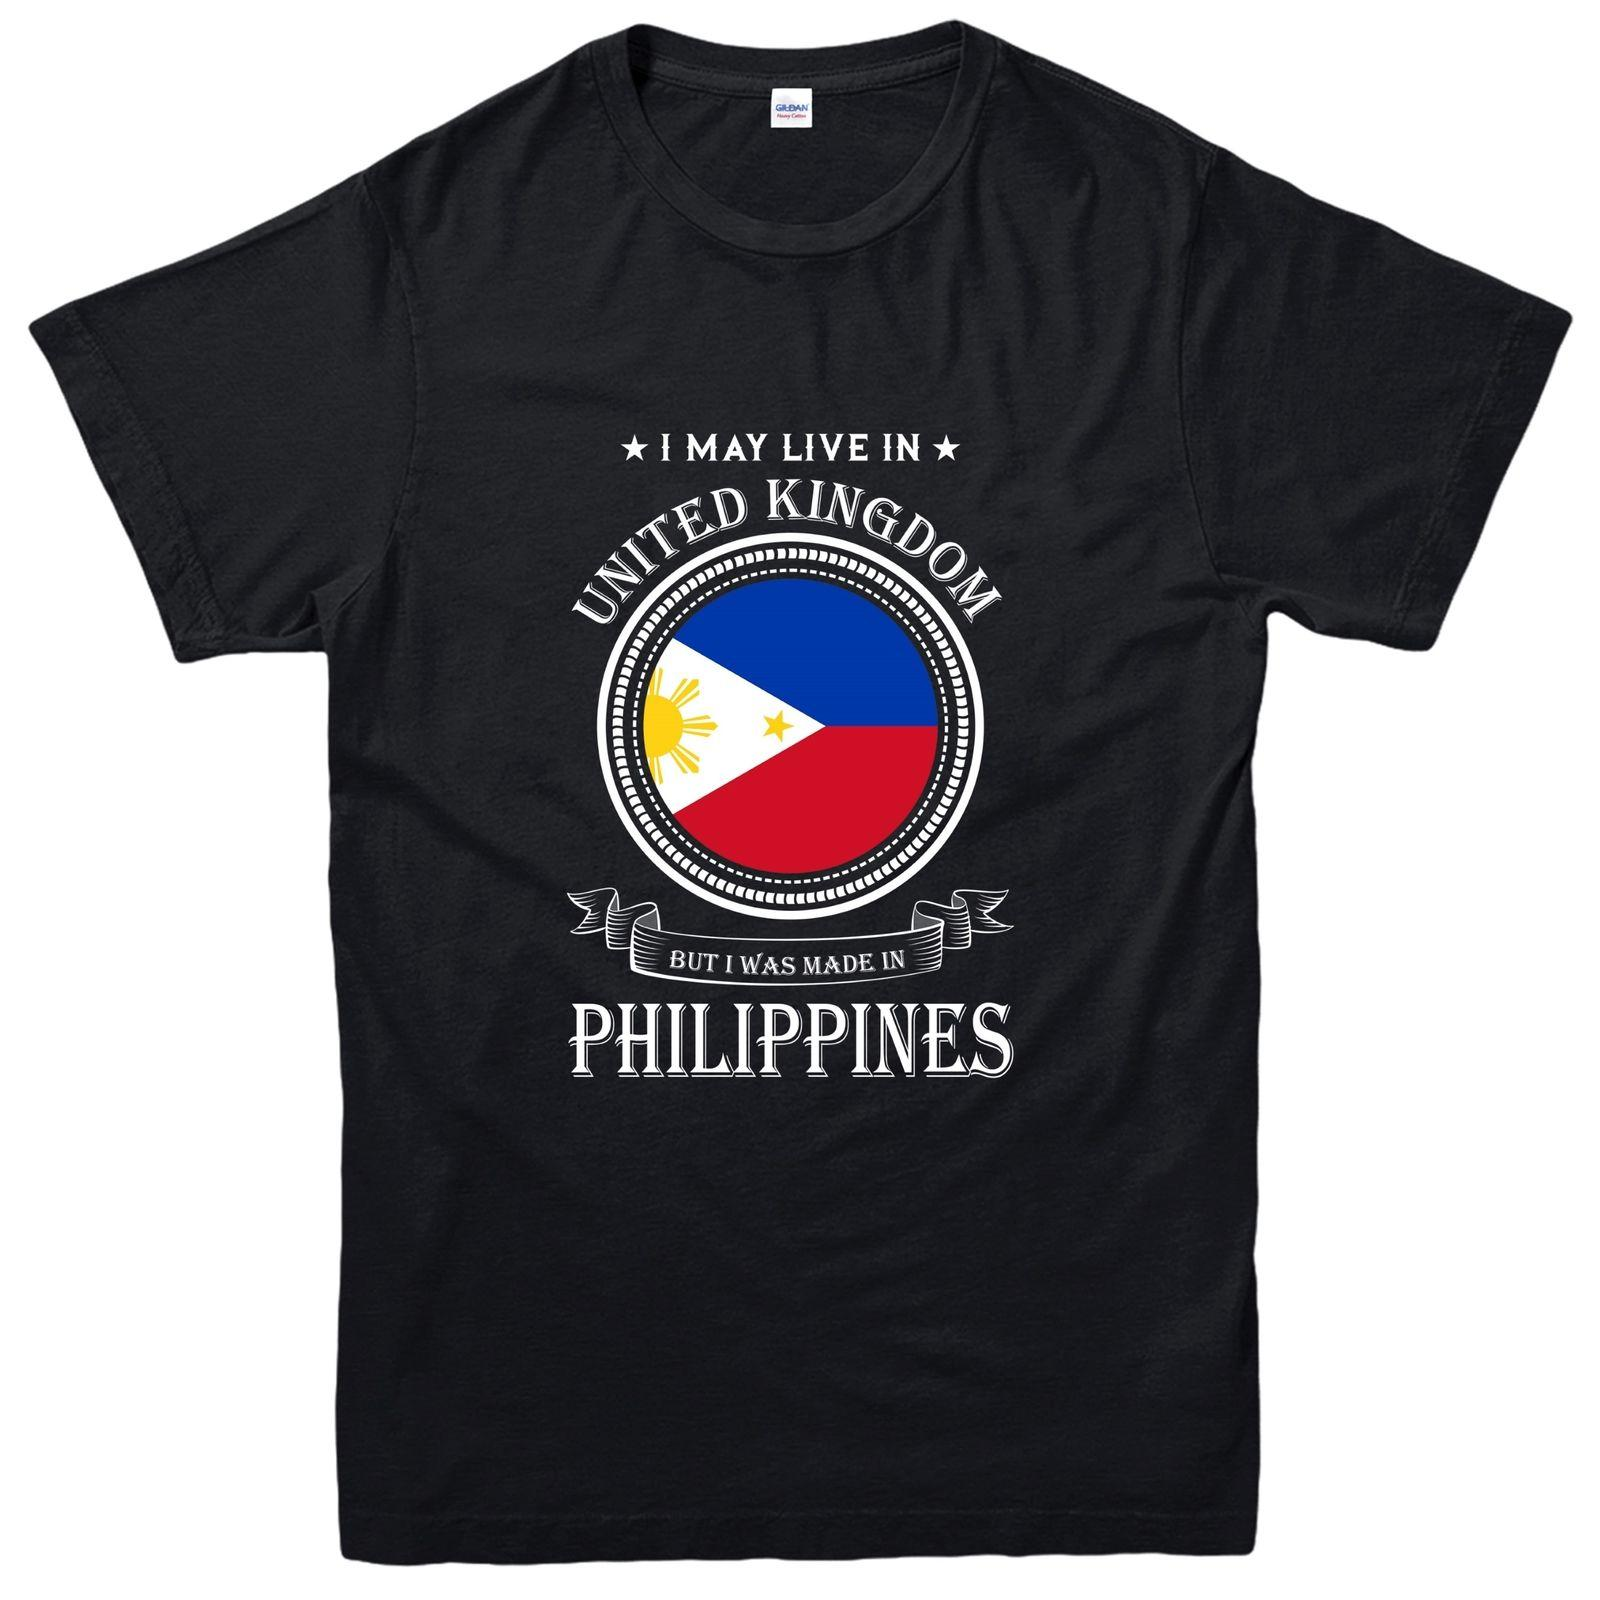 Made In Philippines T Shirt Living In United Kingdom Nation Love